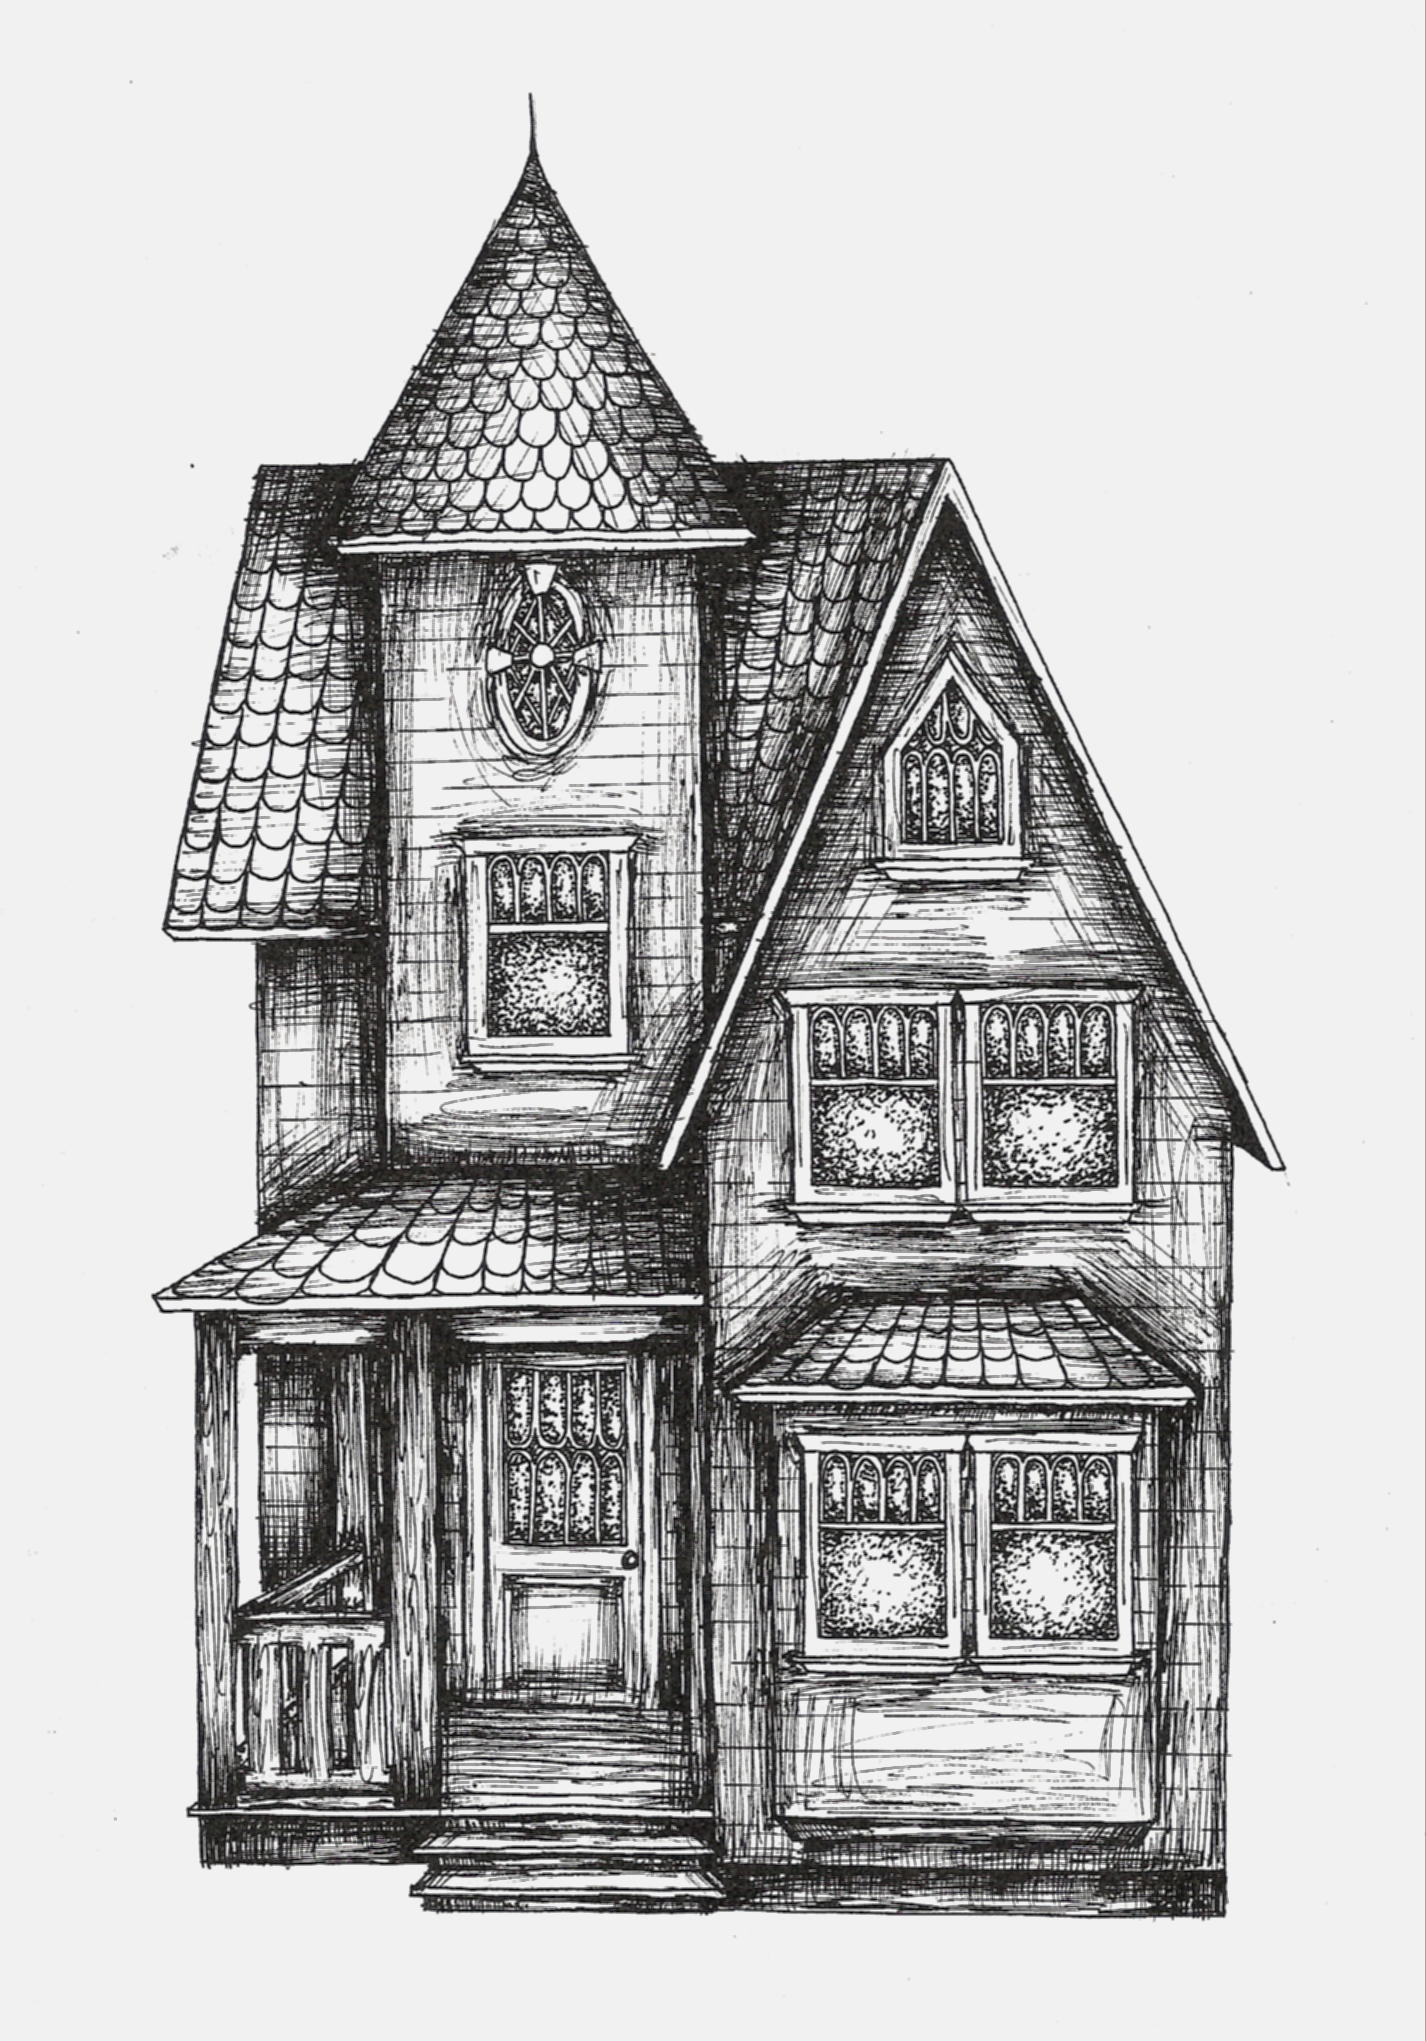 Drawn building old victorian house Pinterest sarah3318 victorian house sarah3318